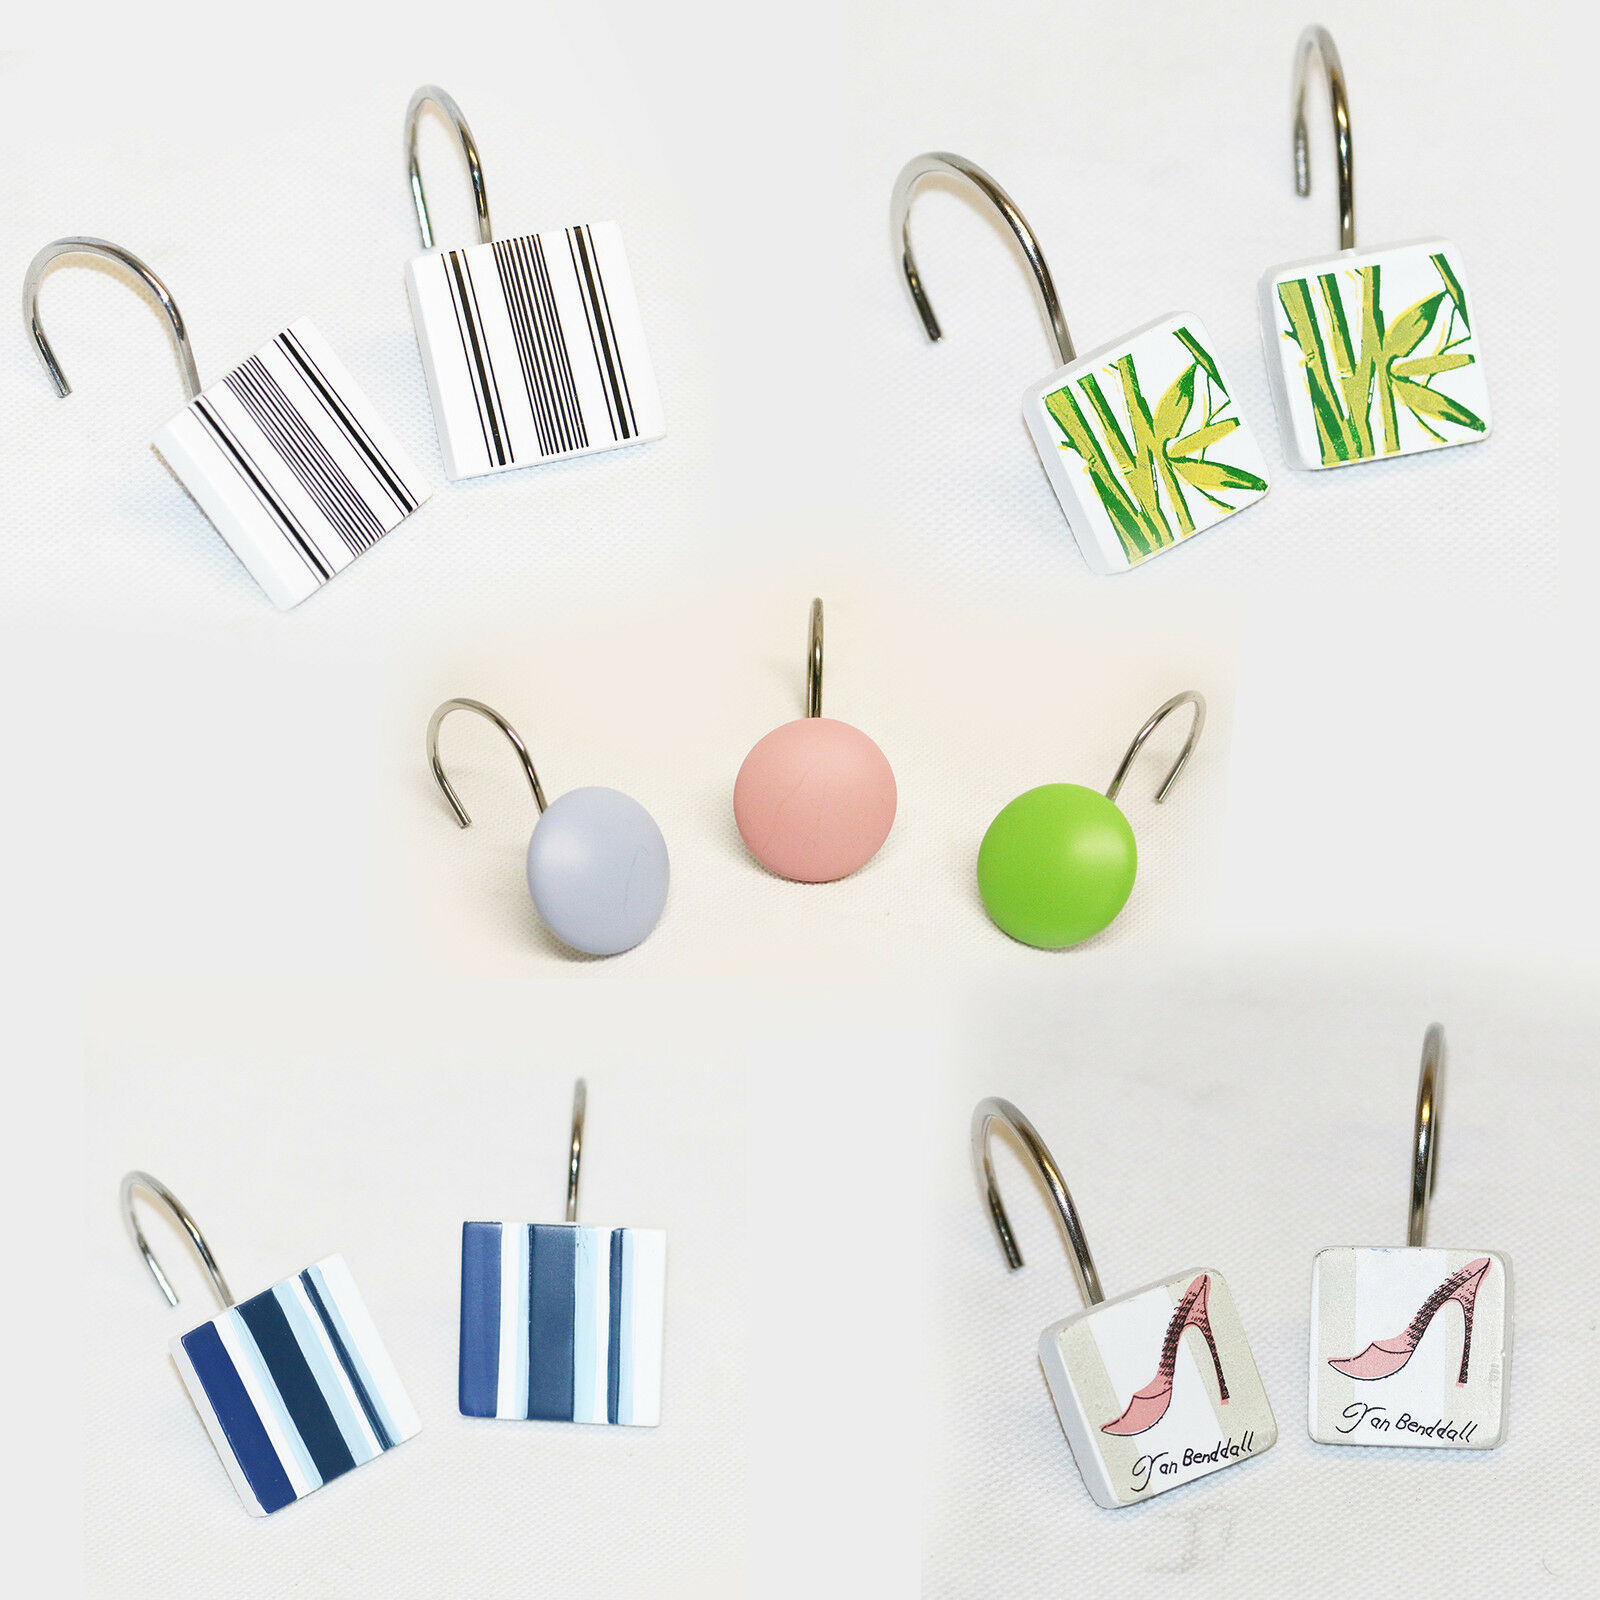 SHOWER Curtain Hook Rings Set Of 12 Ceramic Multi Coloured